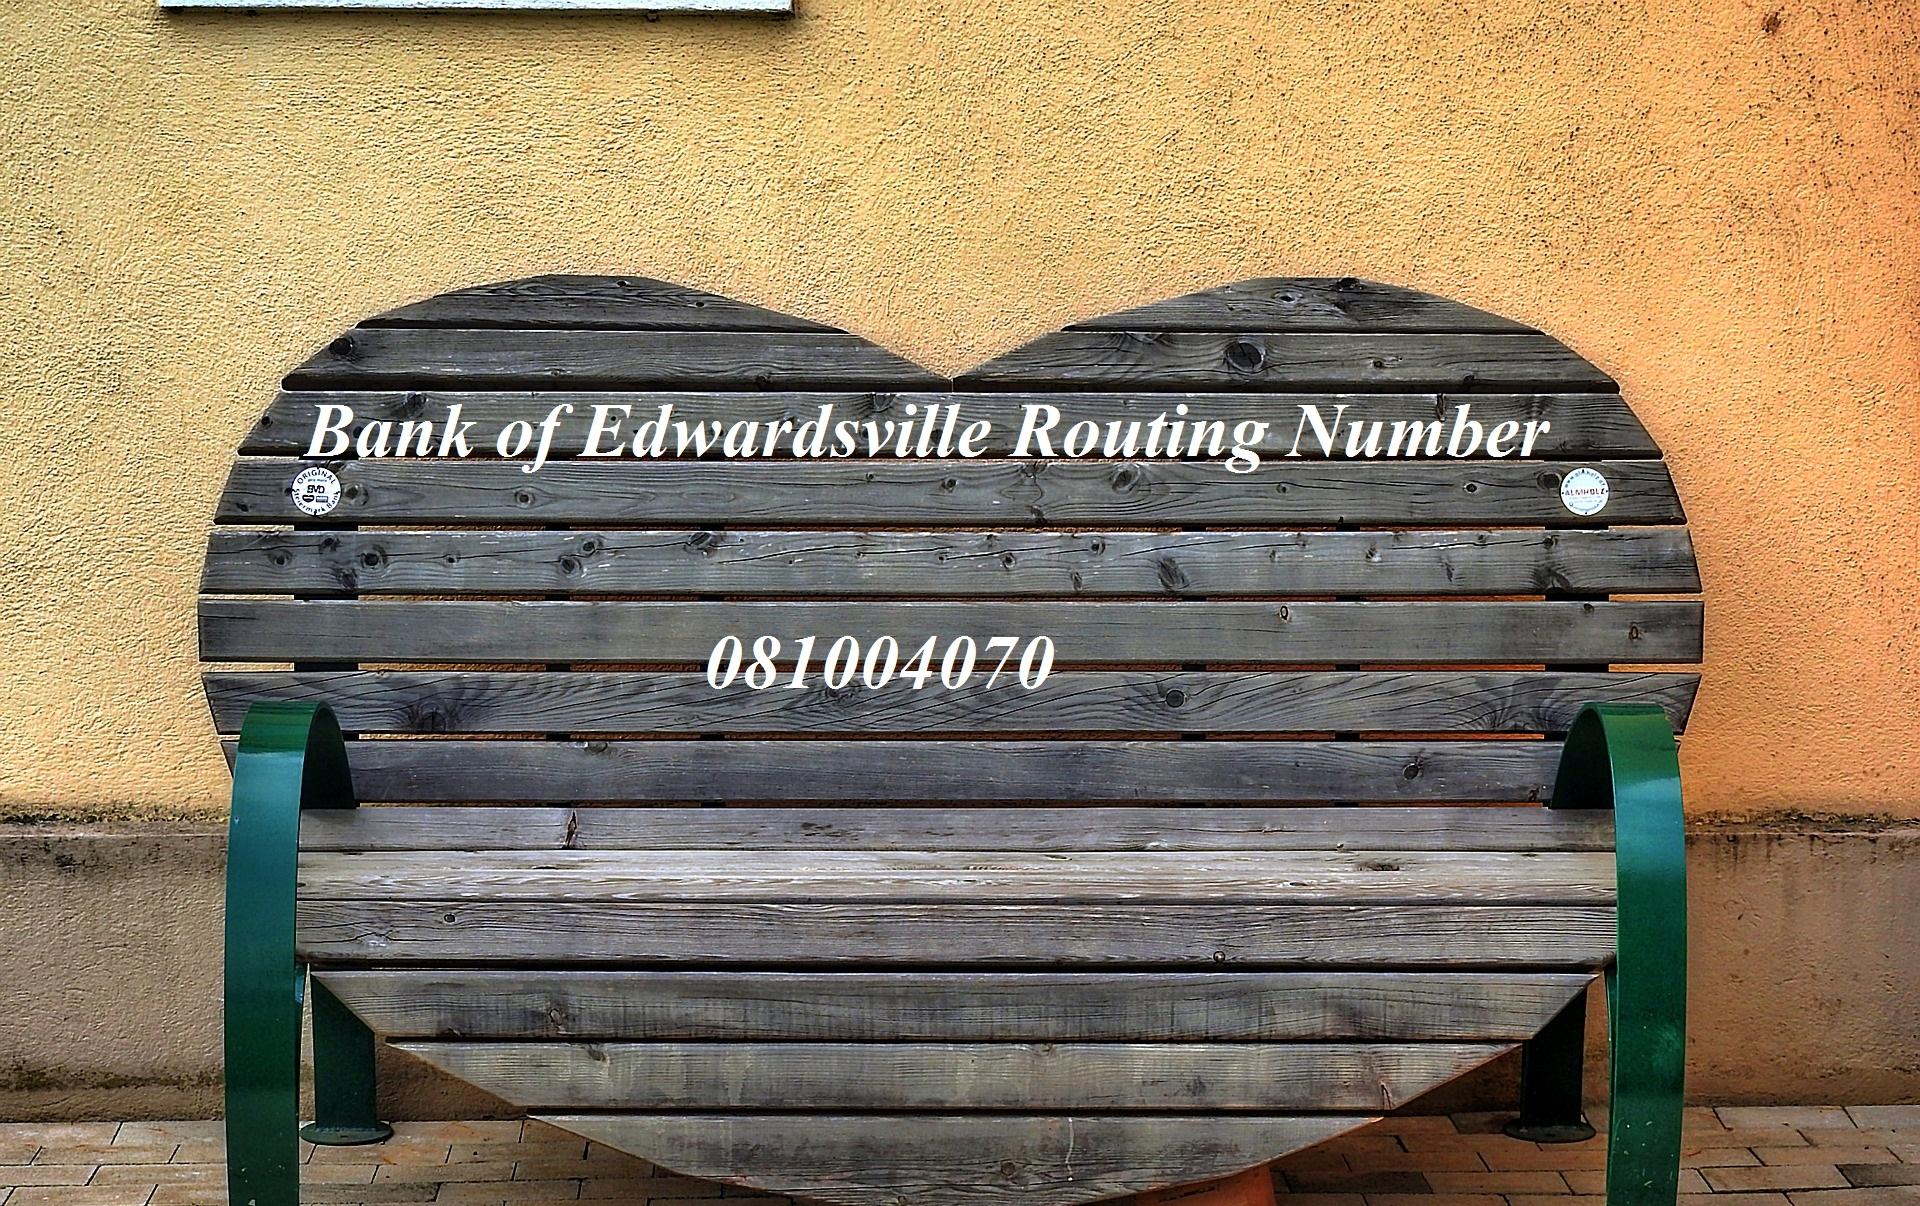 Bank of Edwardsville Routing Number